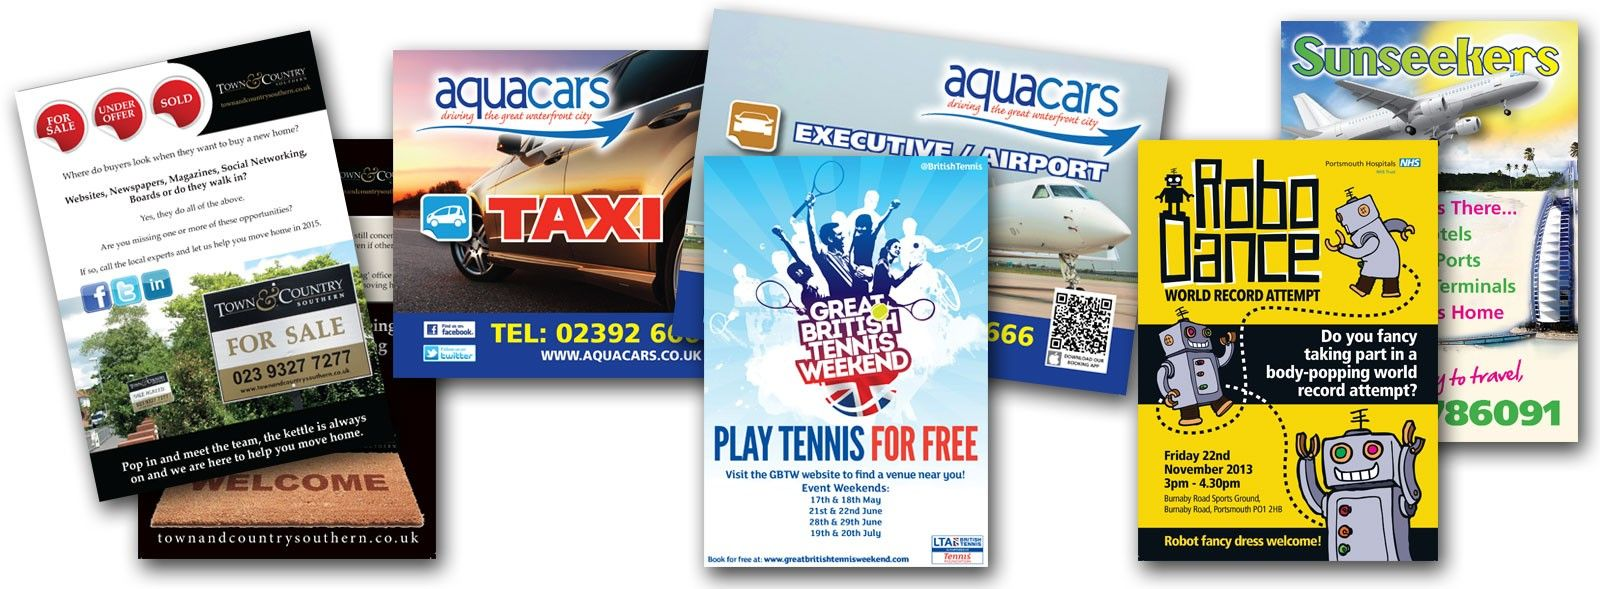 Http Portsmouthflyers Co Uk Professional Flyer Production And Distribution Service Sale House Play Tennis Flyer